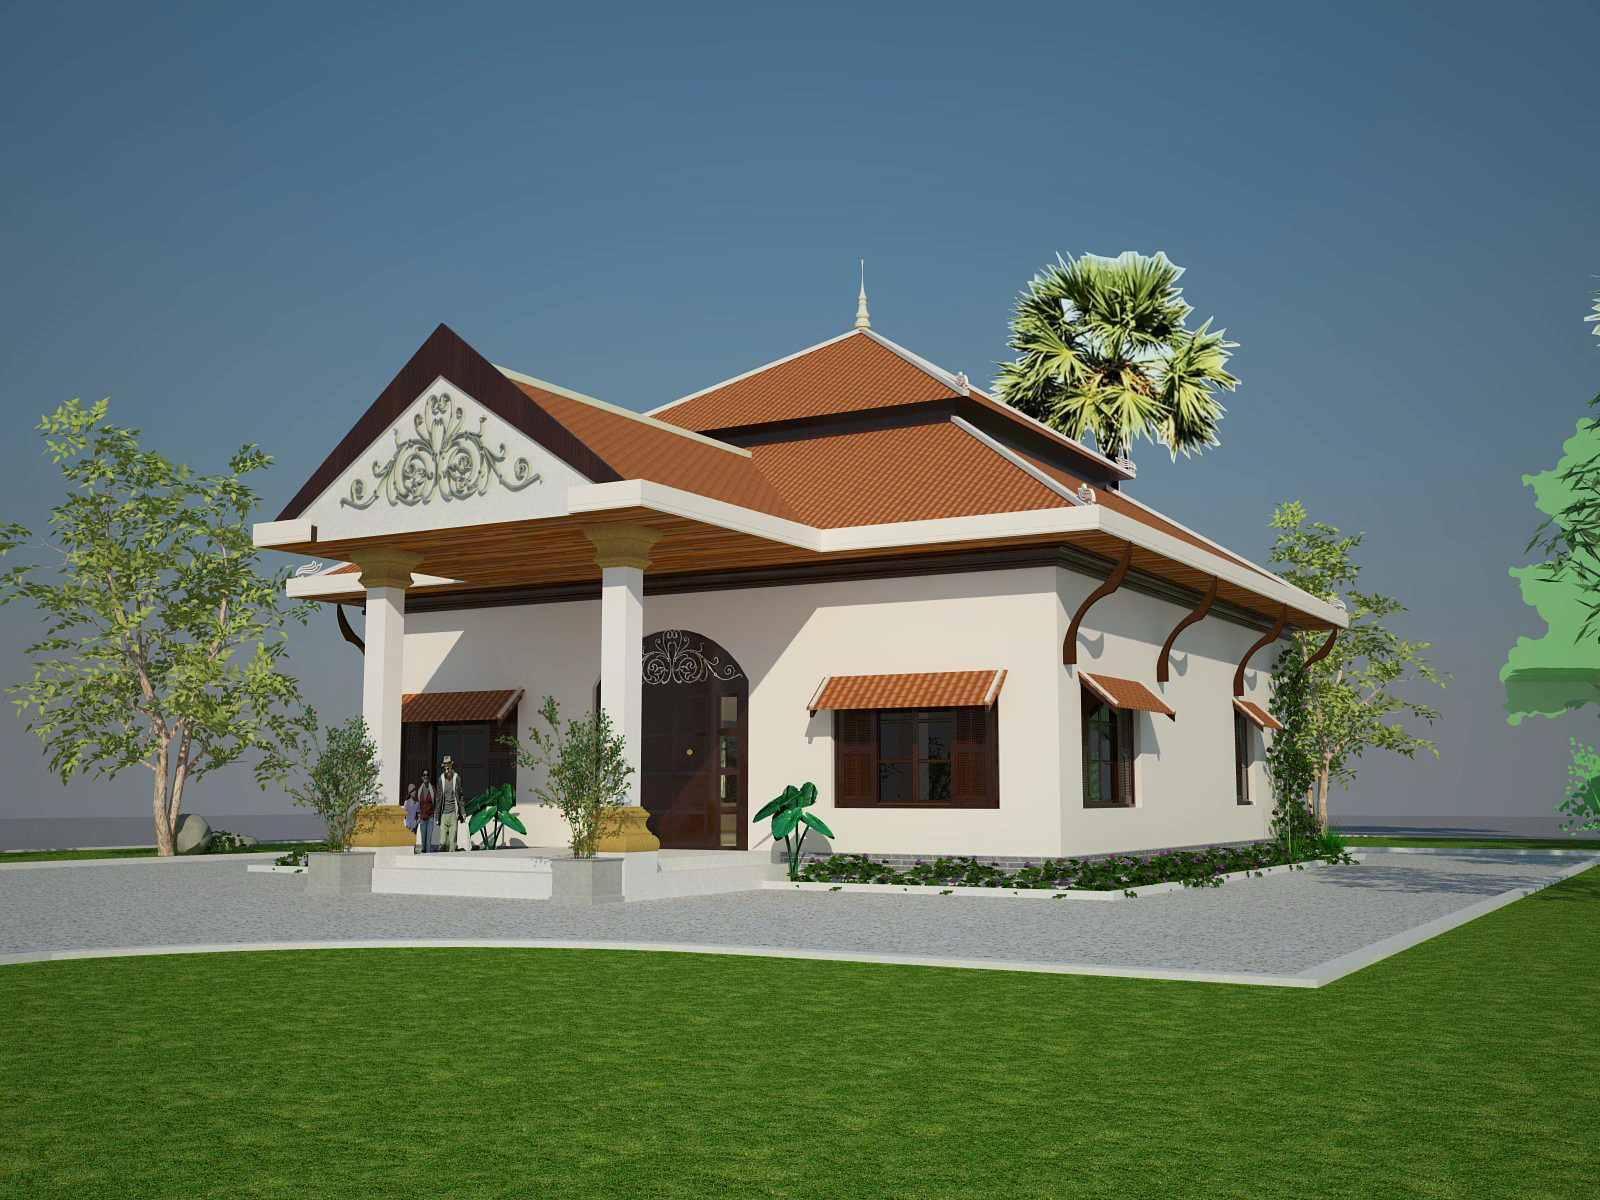 Small khmer house roof style architecture decoration idea for Architecture khmer